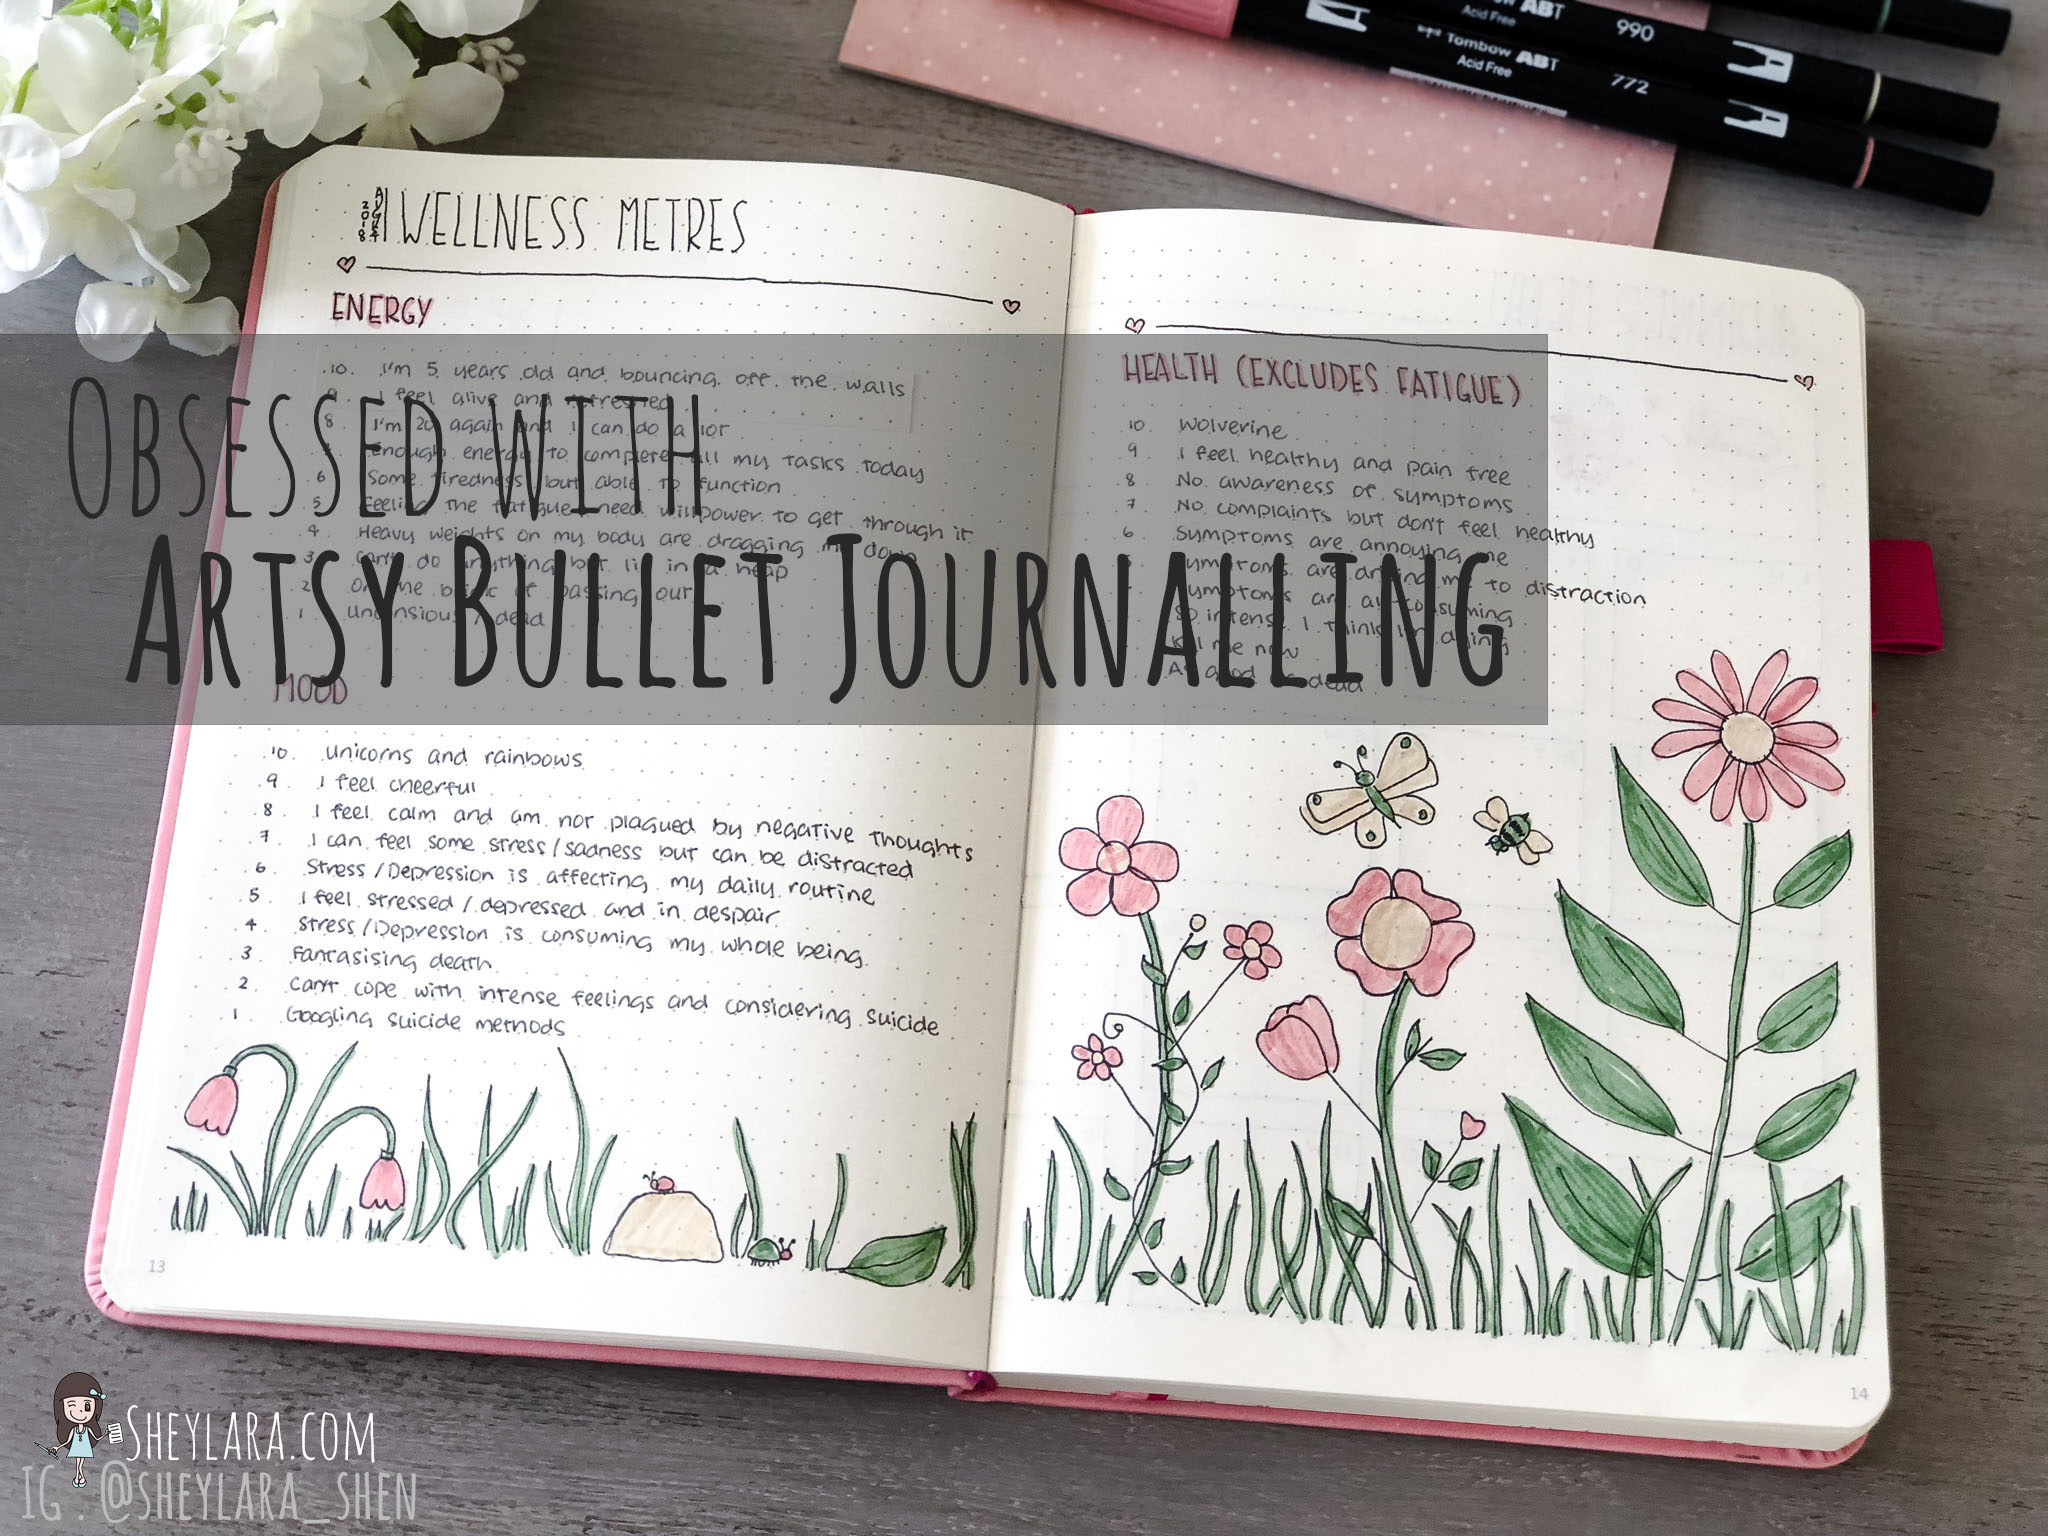 Obsessed with Artsy Bullet Journalling